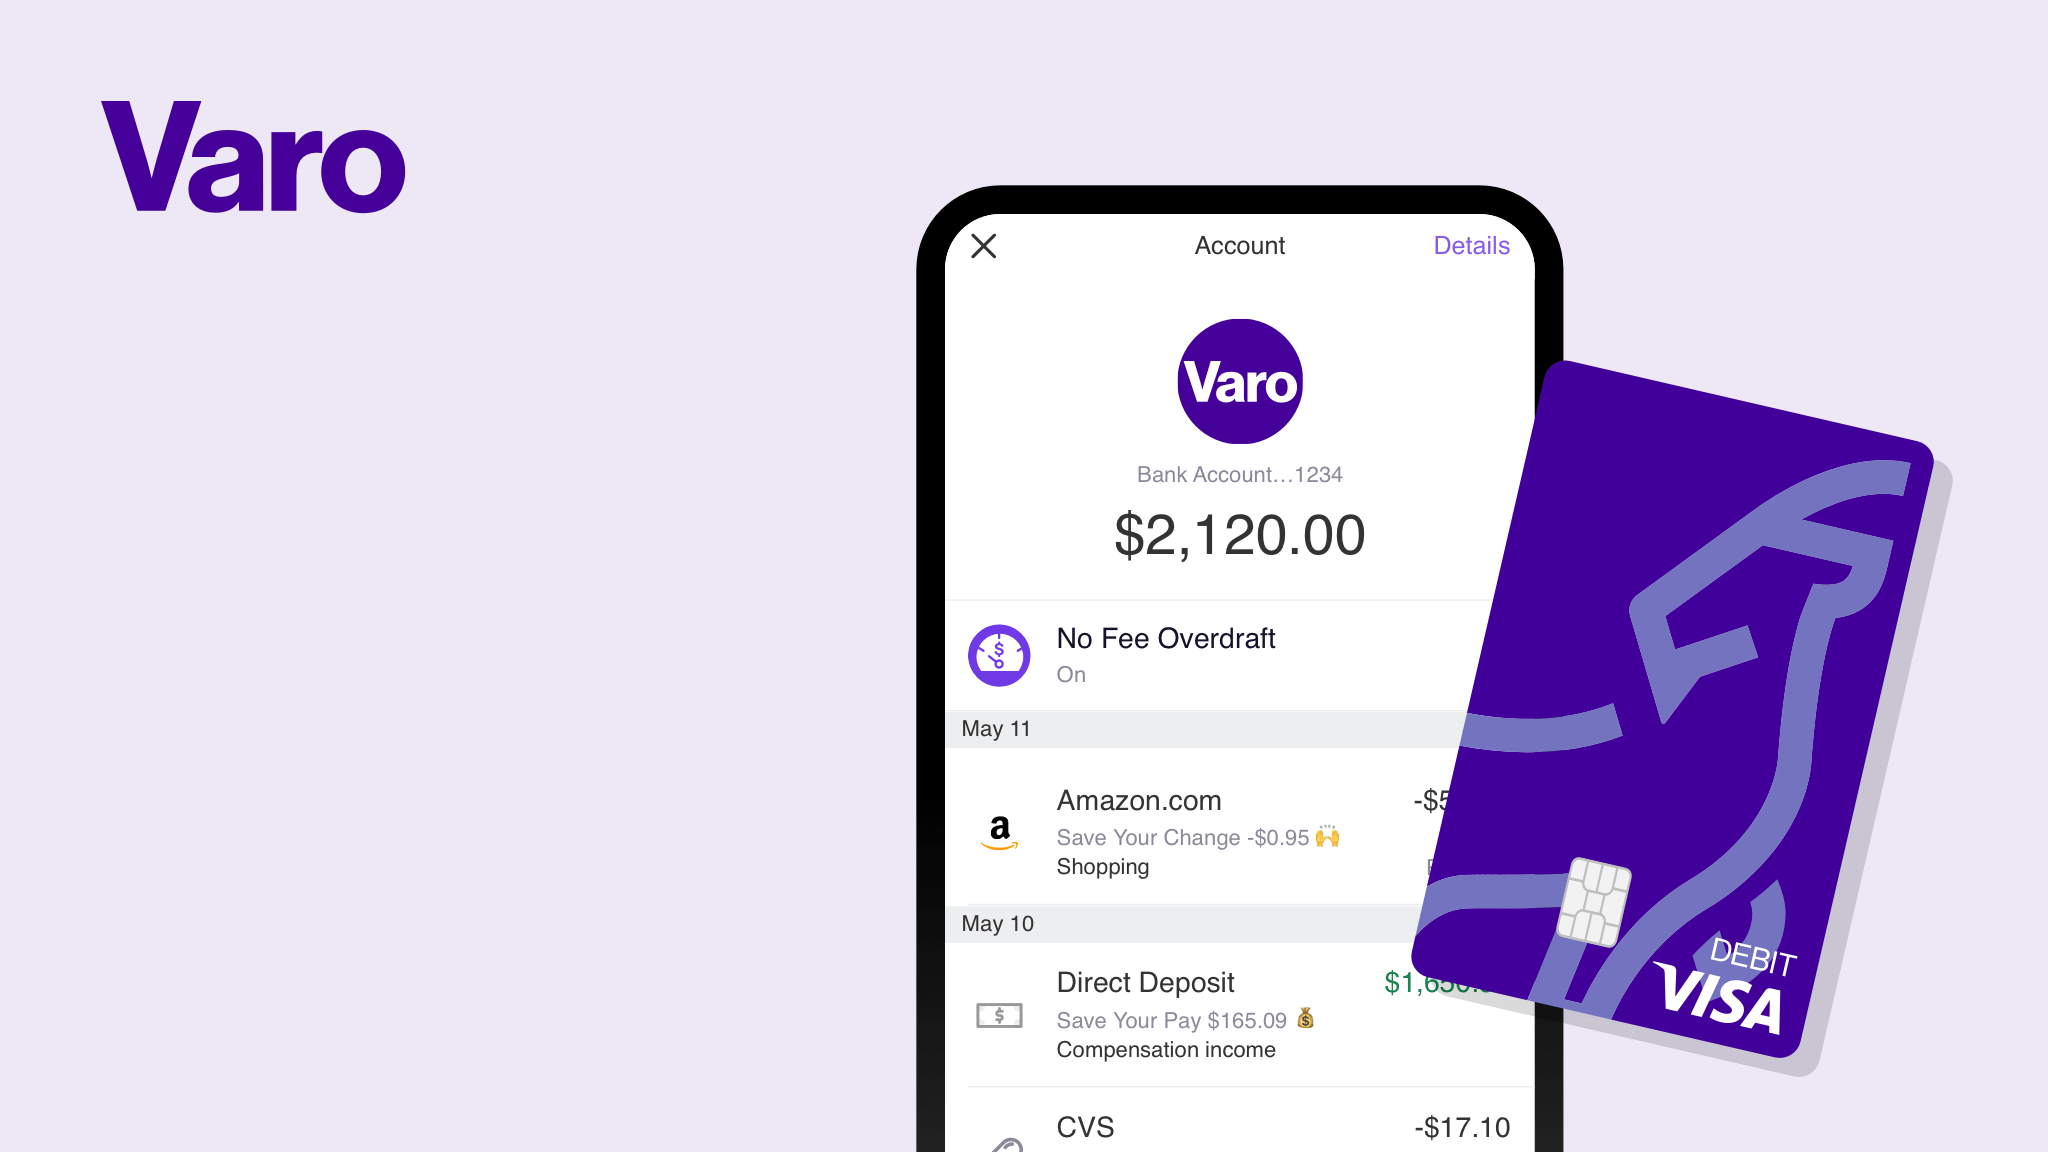 Mobile banking with Varo and a debit card